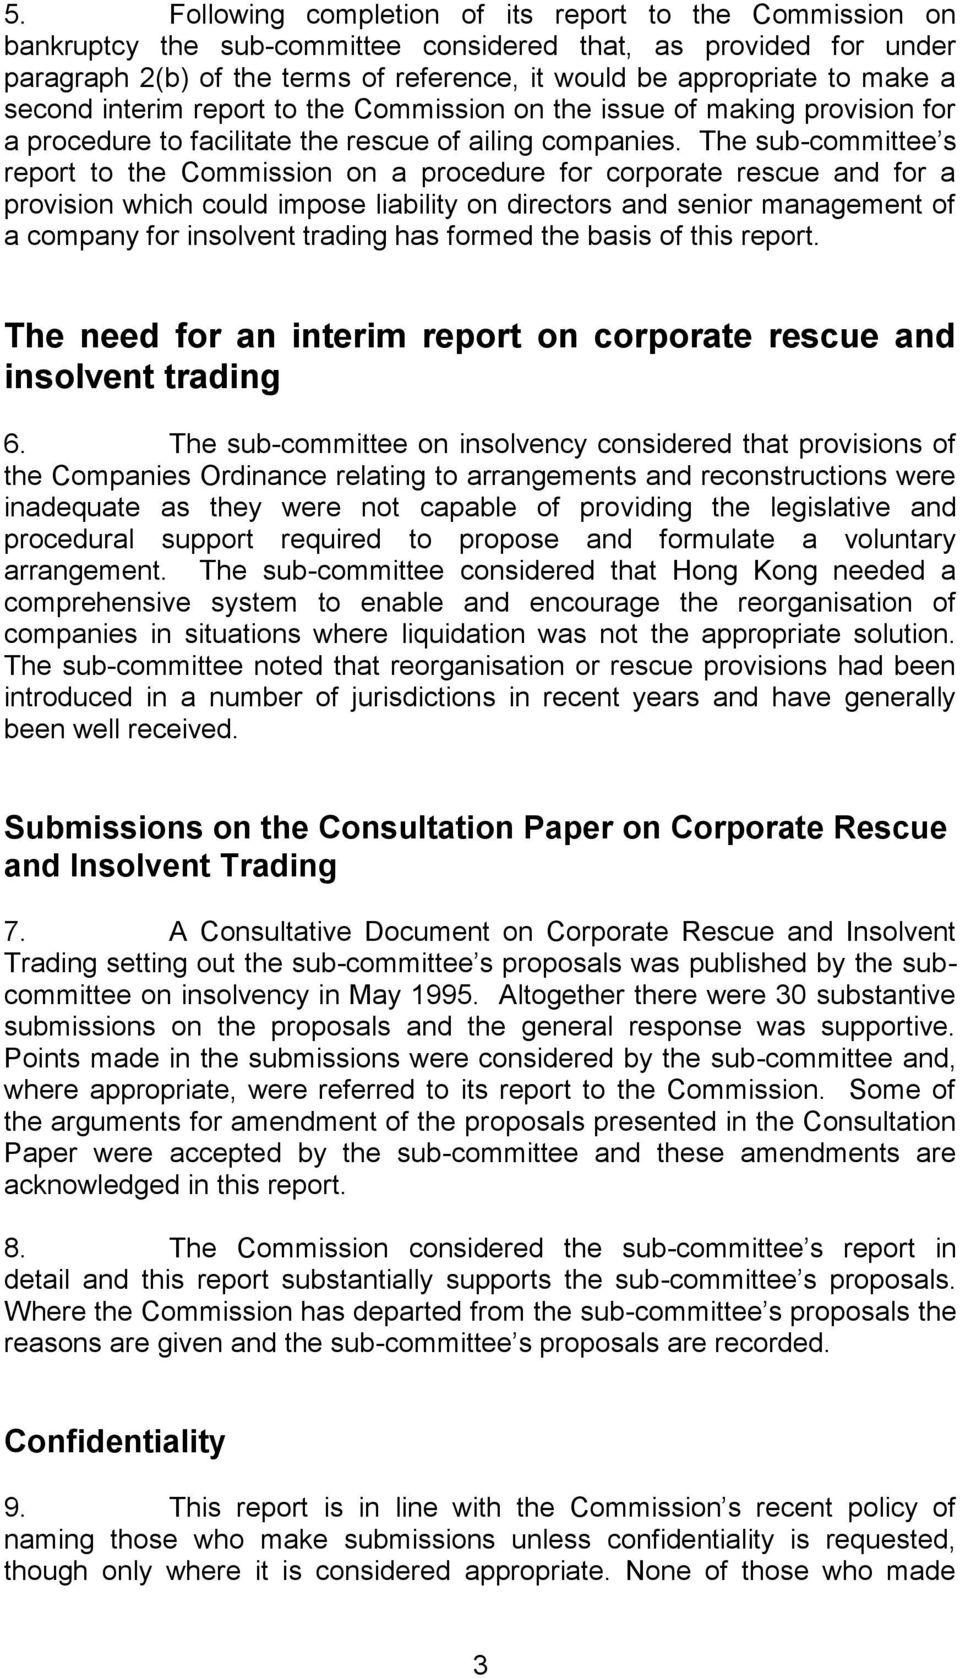 The sub-committee s report to the Commission on a procedure for corporate rescue and for a provision which could impose liability on directors and senior management of a company for insolvent trading